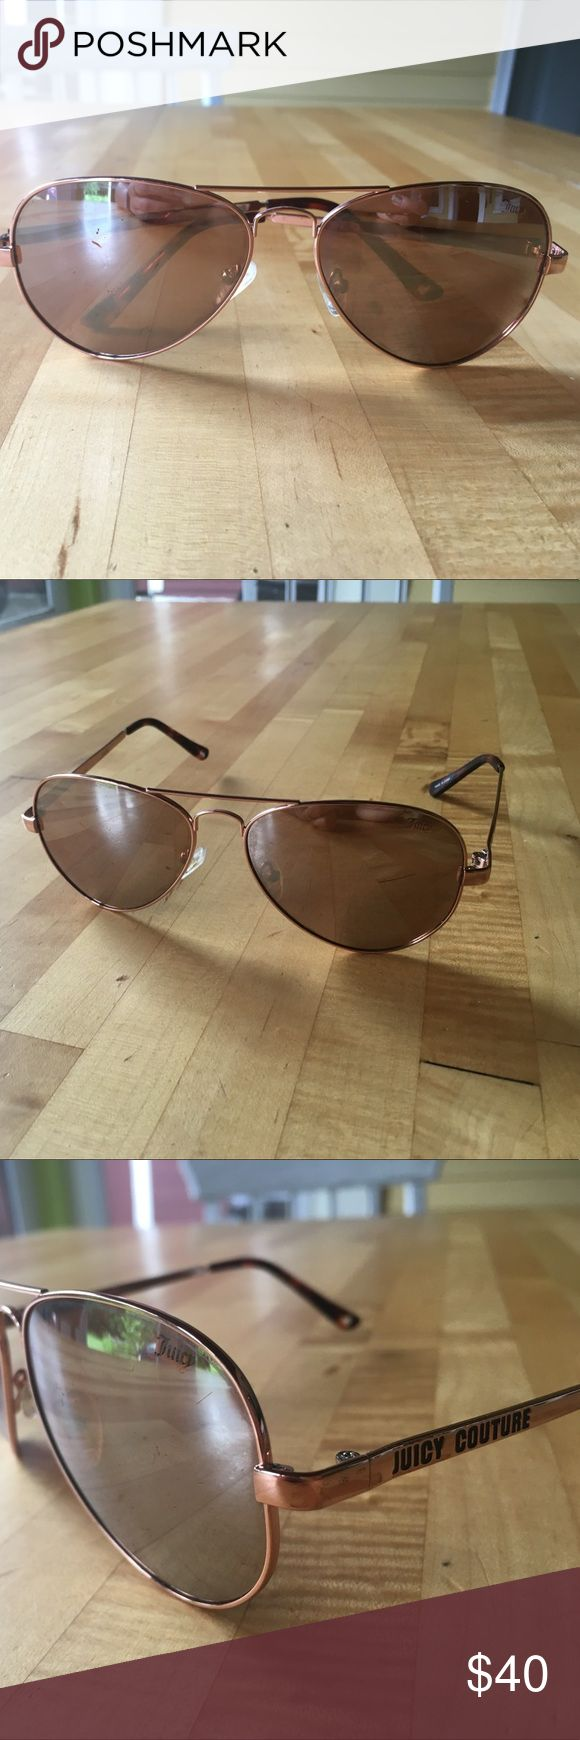 Juicy Couture Aviator Sunglasses Authentic Juicy Couture sunglasses. Some scratches on the lenses and the temples. In good wearable condition. Juicy Couture Accessories Sunglasses